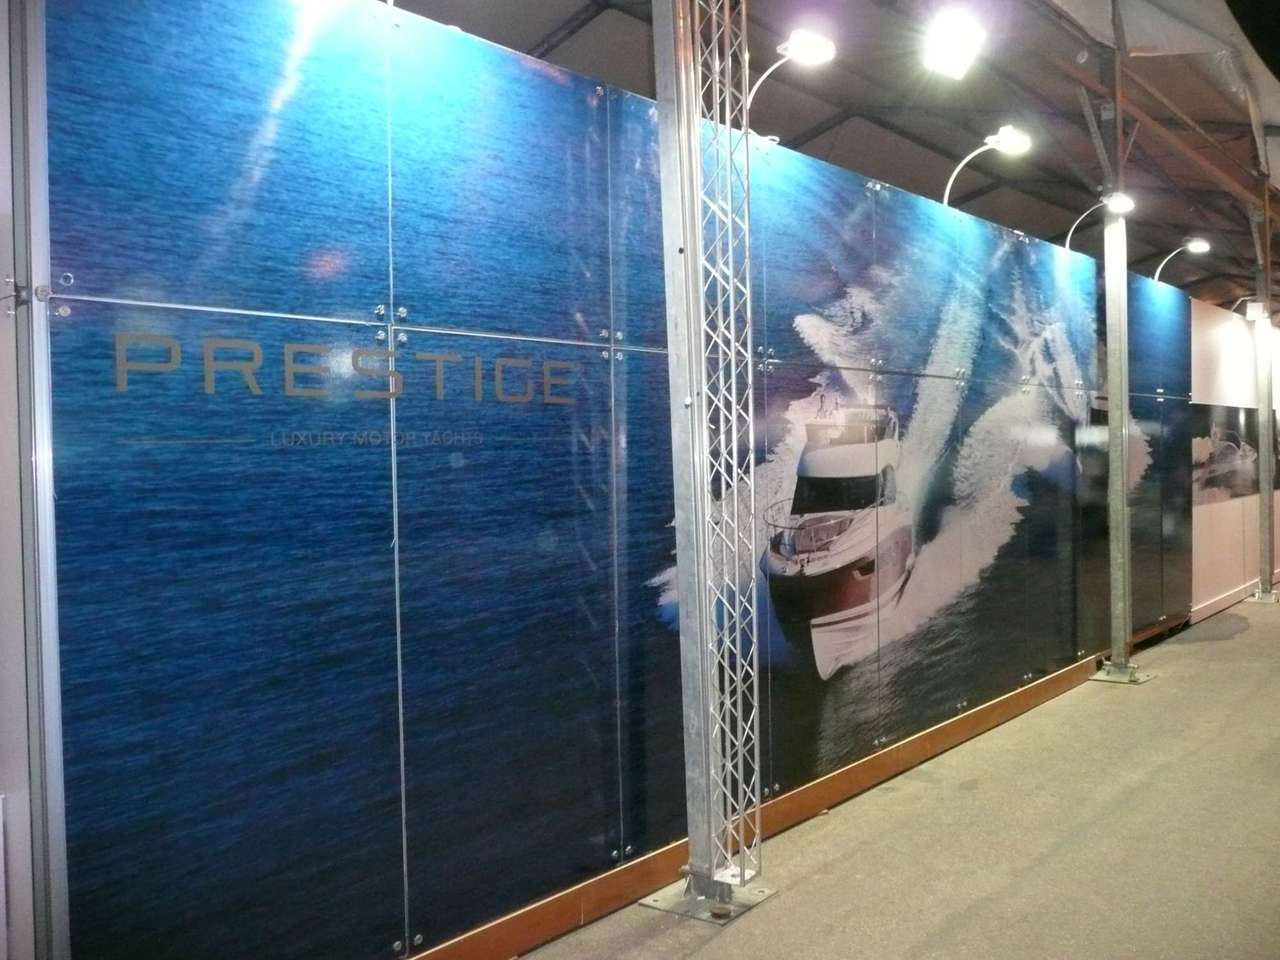 Prestige, one of the top brands in the luxury yacht world in Brazil 4